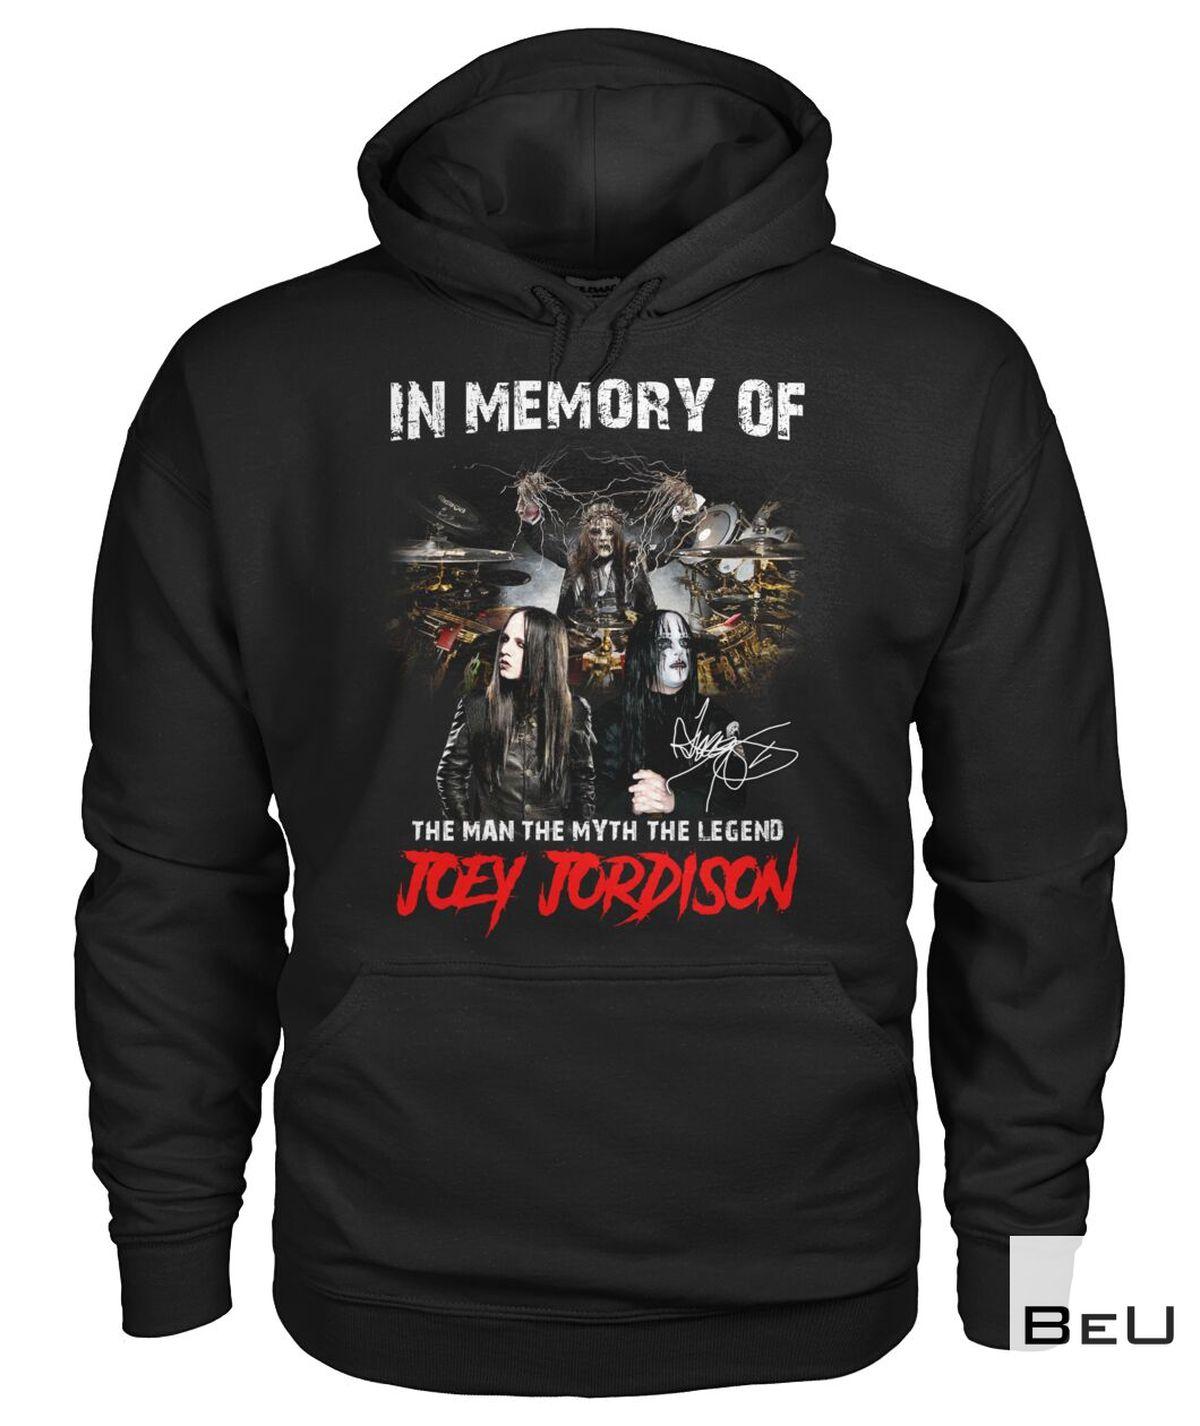 Buy In US In Memory Of The Man The Myth The Legend Joey Jordison Shirt, hoodie, tank top